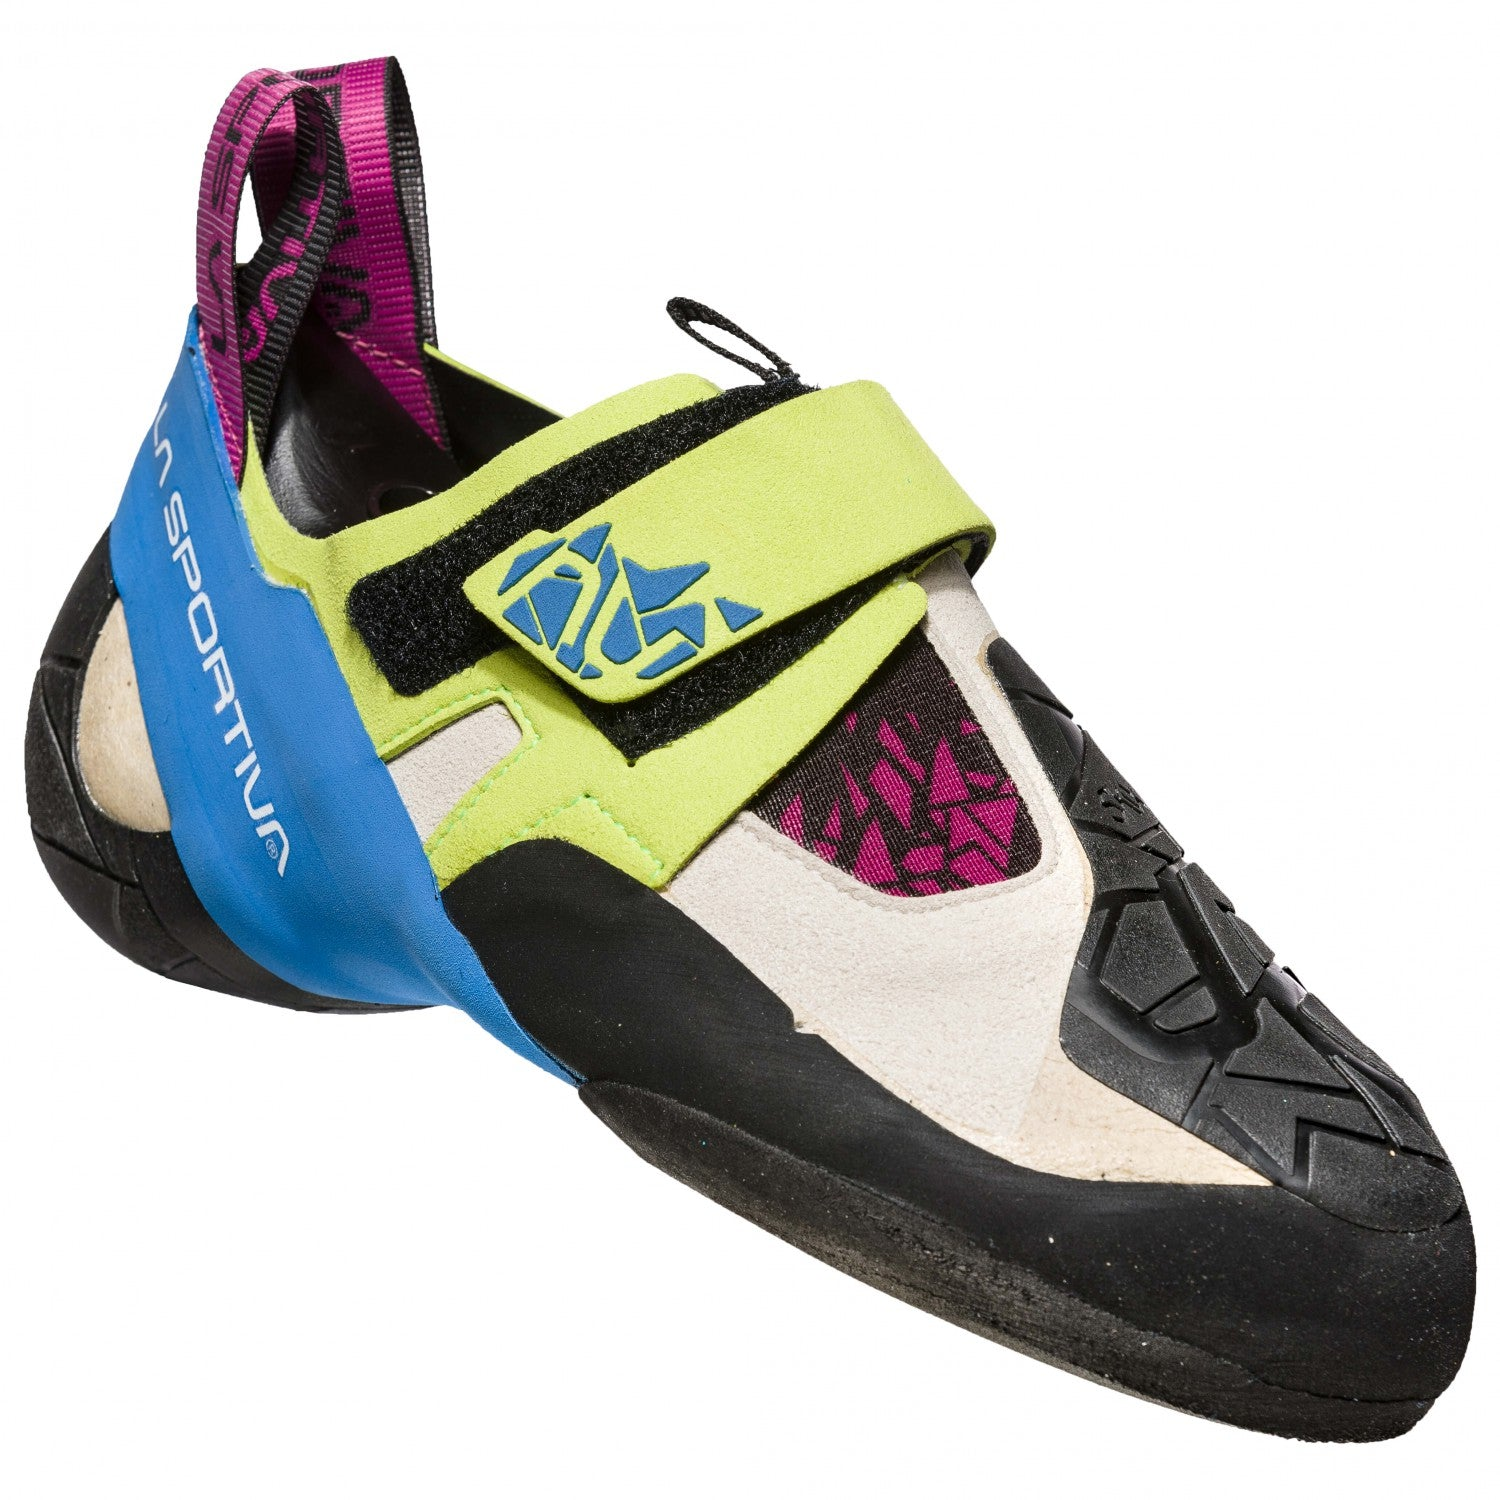 La Sportiva Skwama Women's climbing shoe, in black, blue and green colours